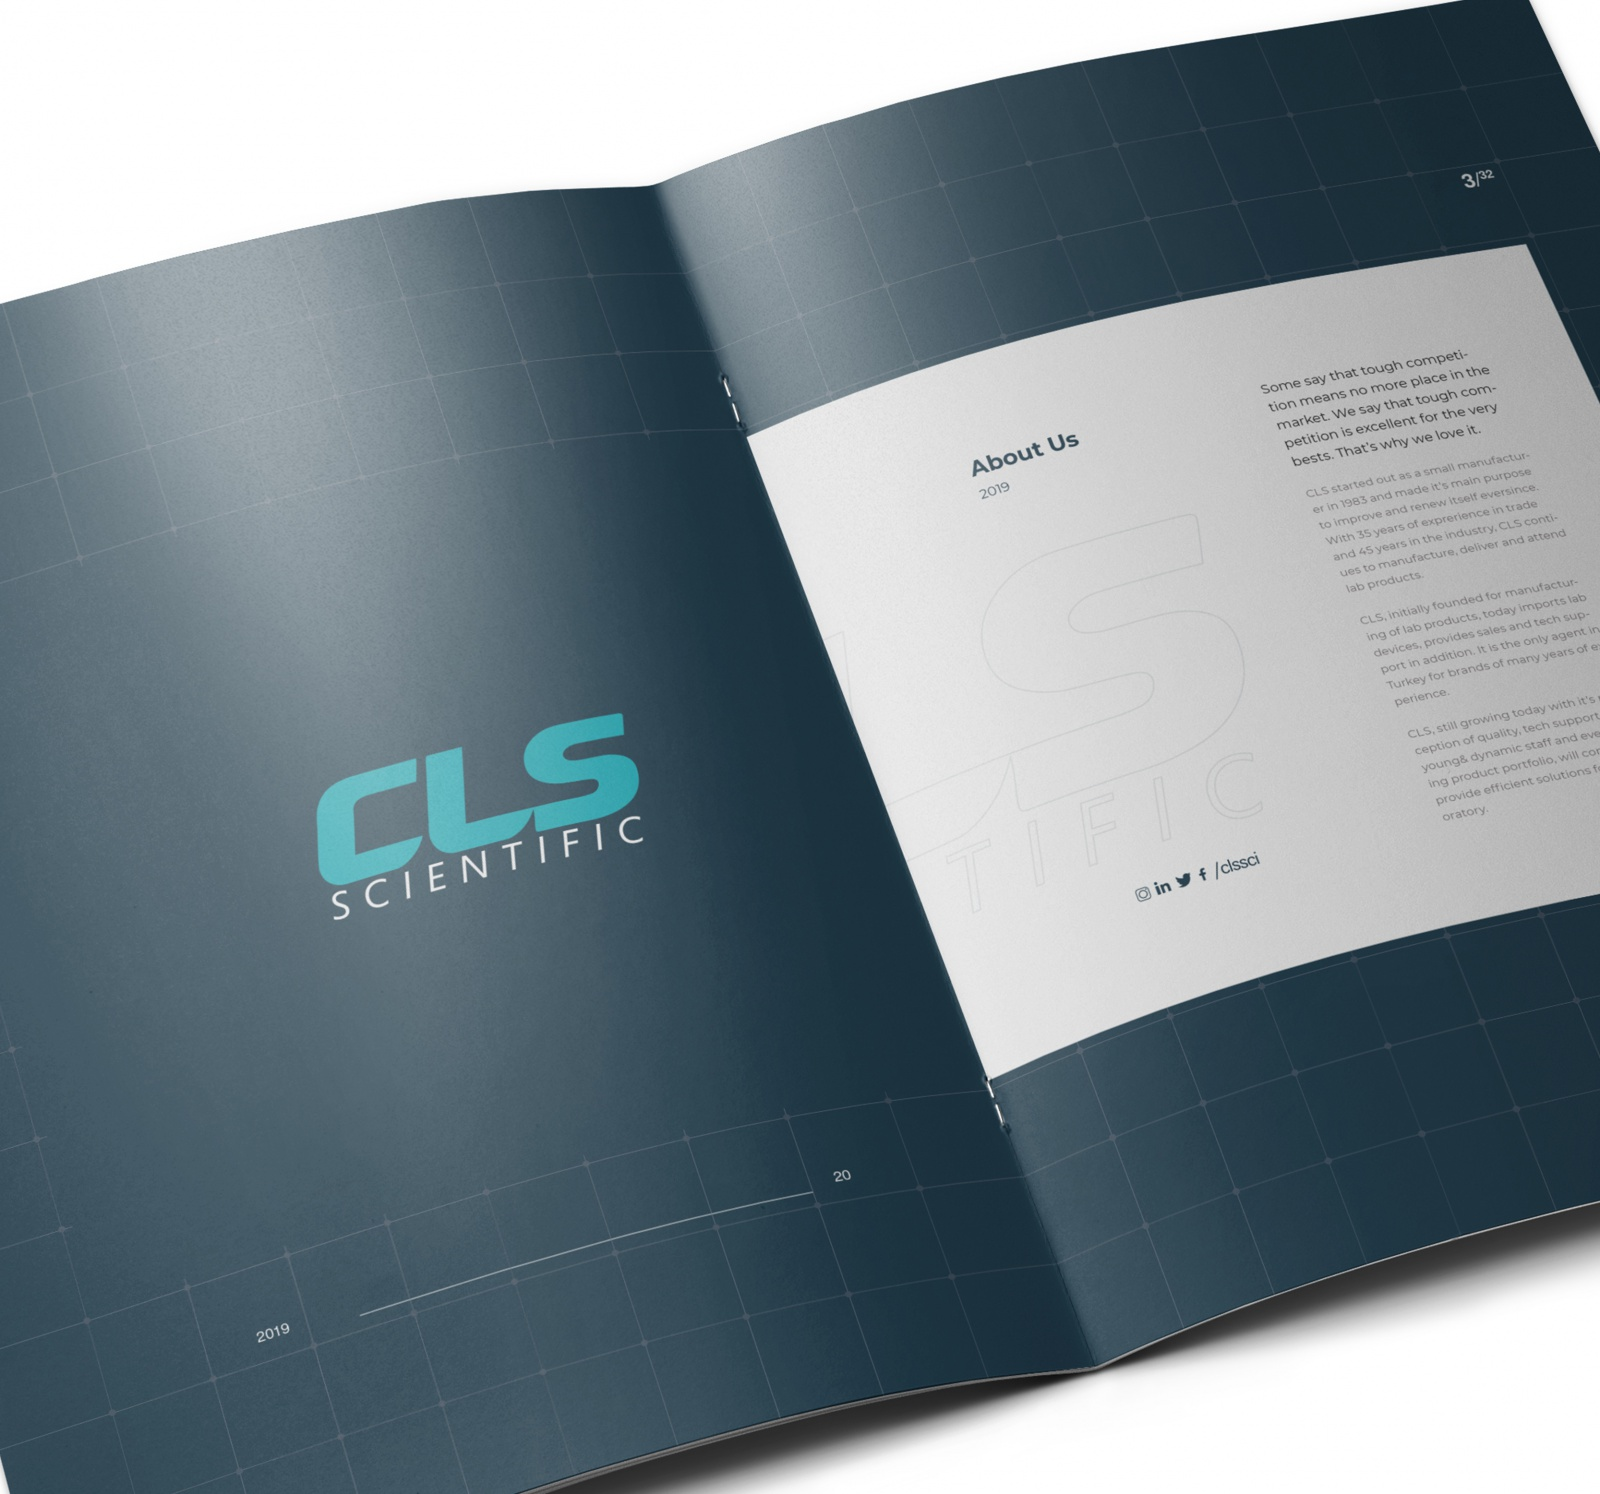 CLS SCIENTIFIC CO. LTD.